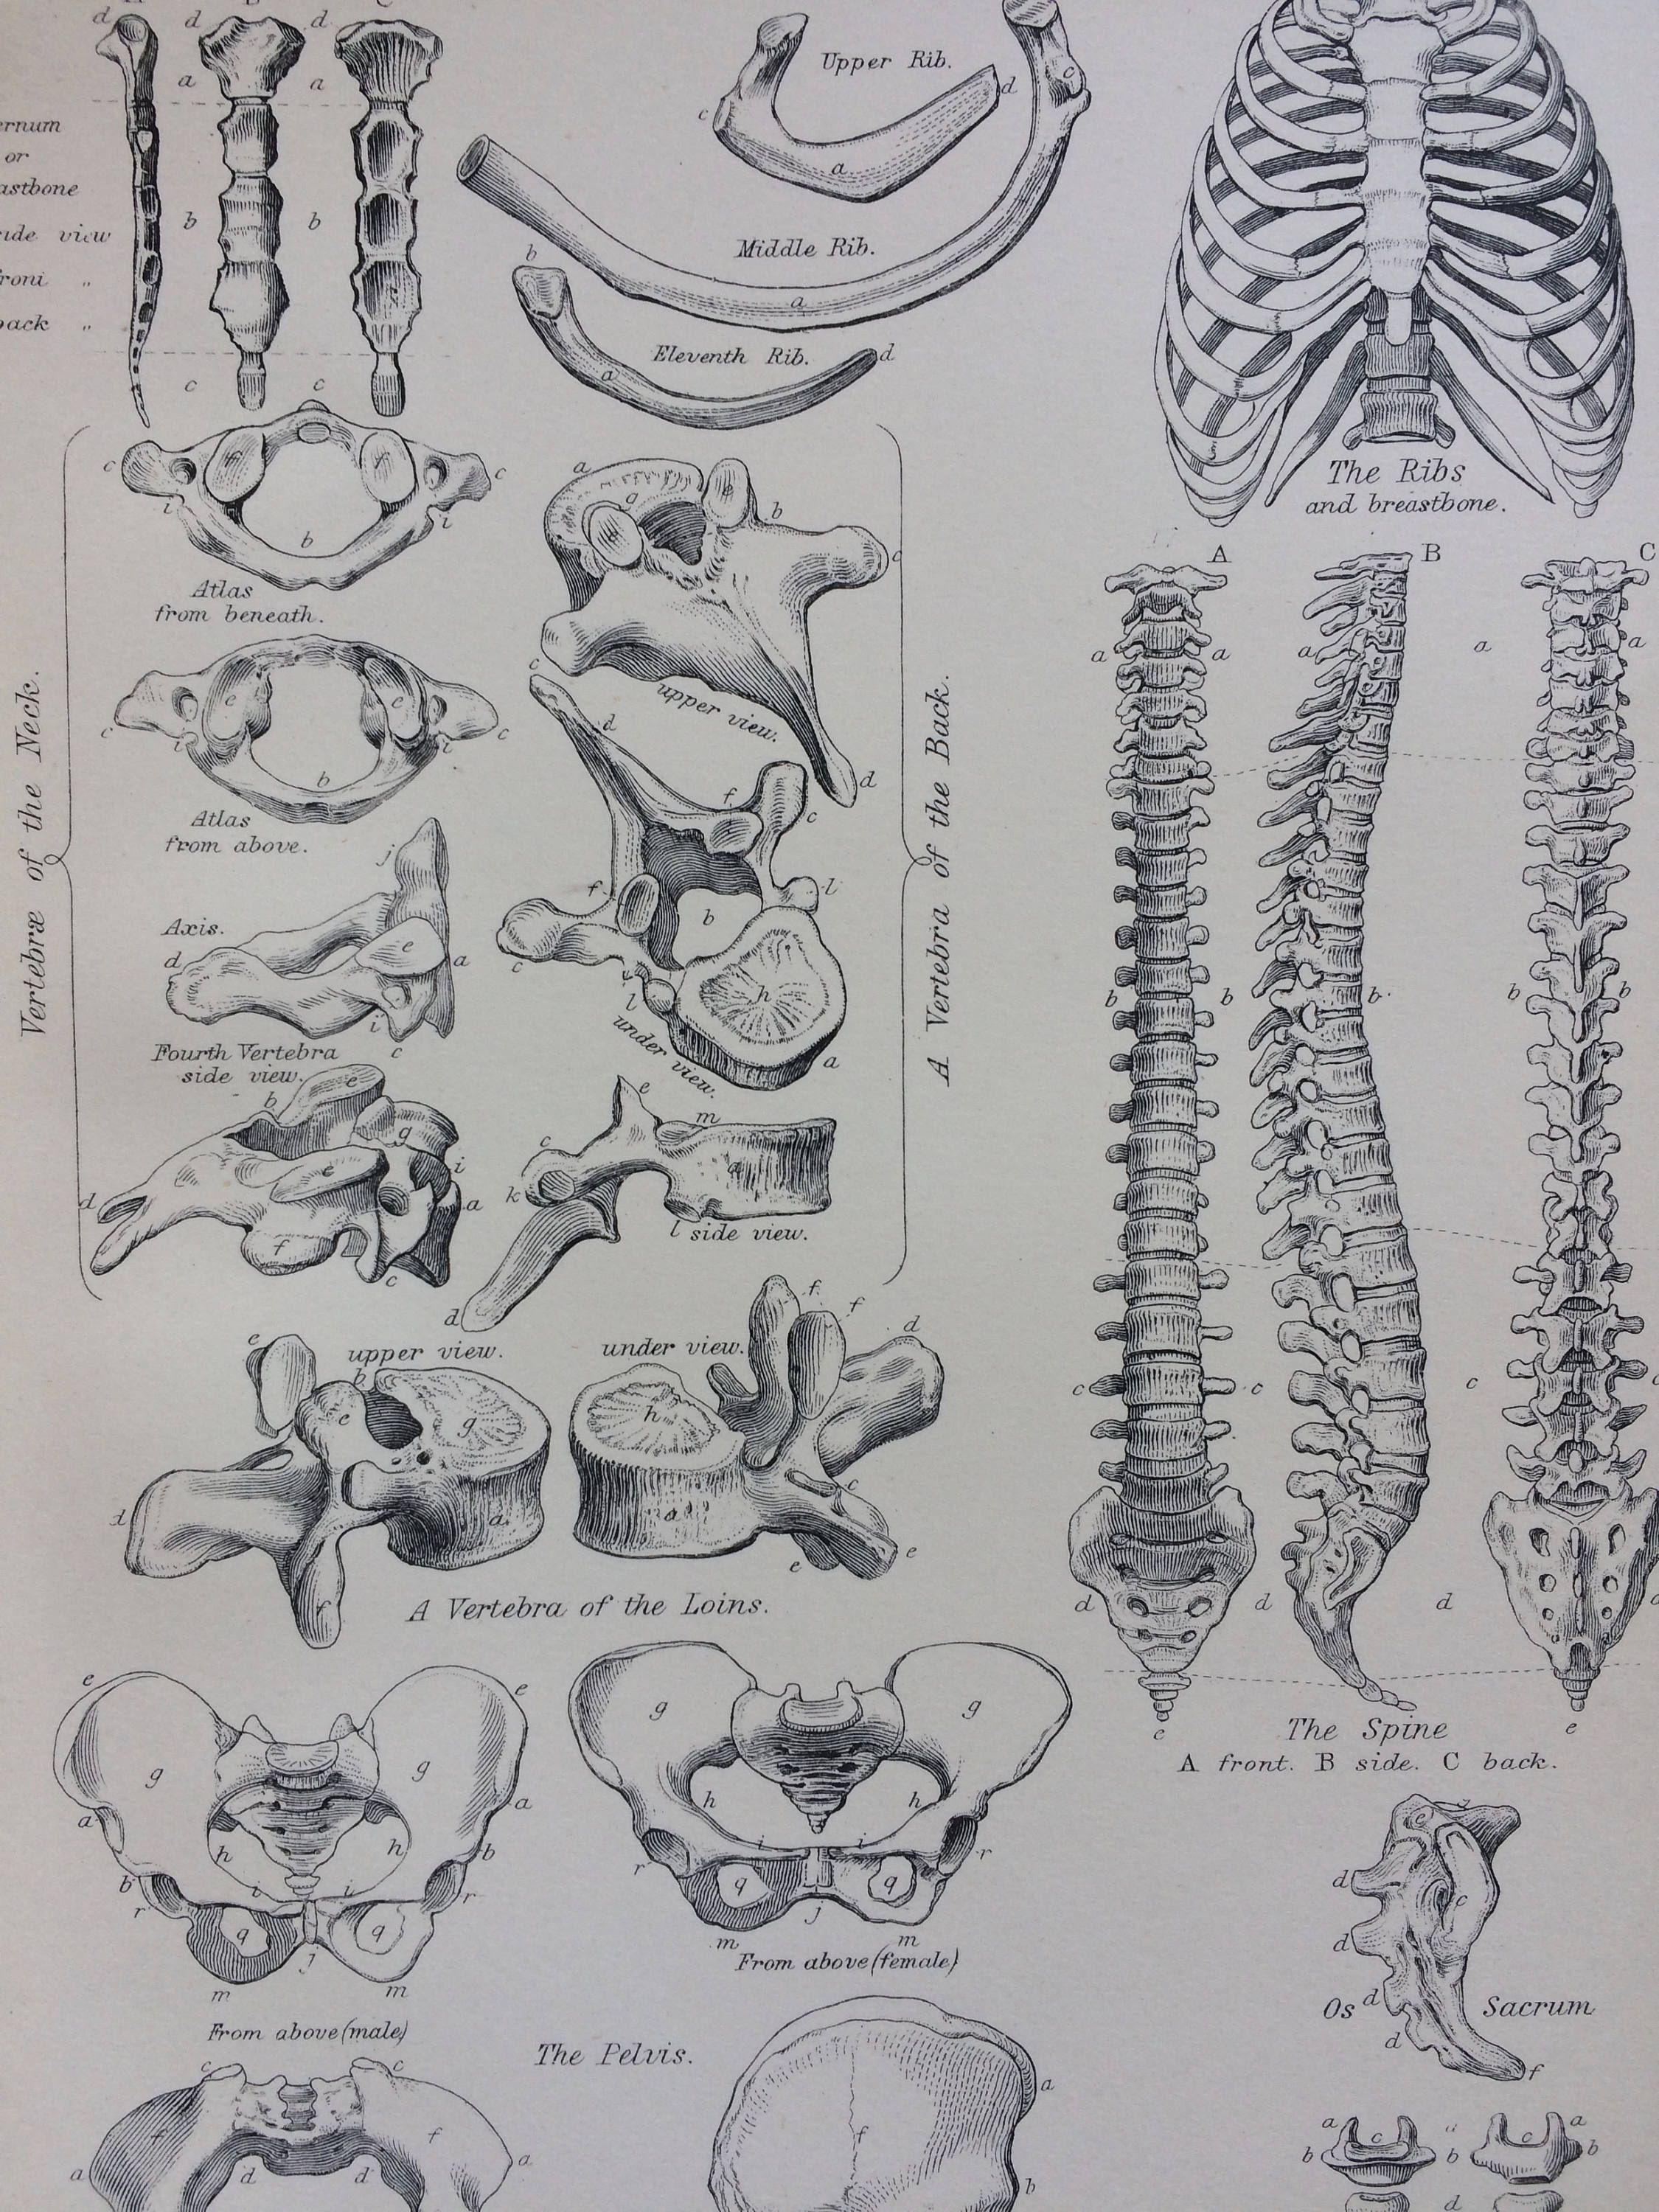 medium resolution of 1891 backbone original antique encyclopaedia illustration wall decor home decor osteology bones